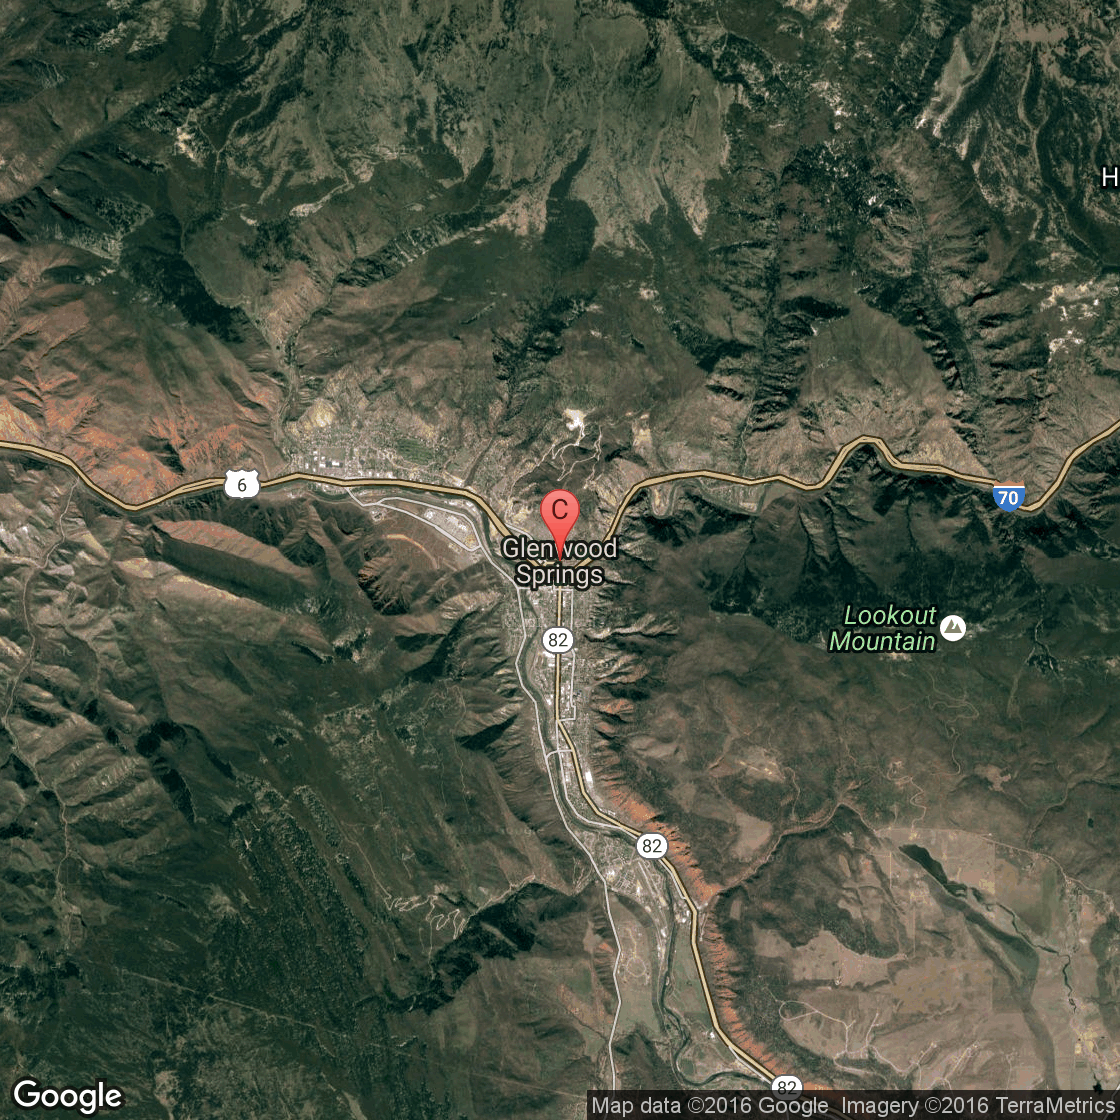 Tourist Information for Glenwood Springs, Colorado | USA Today on